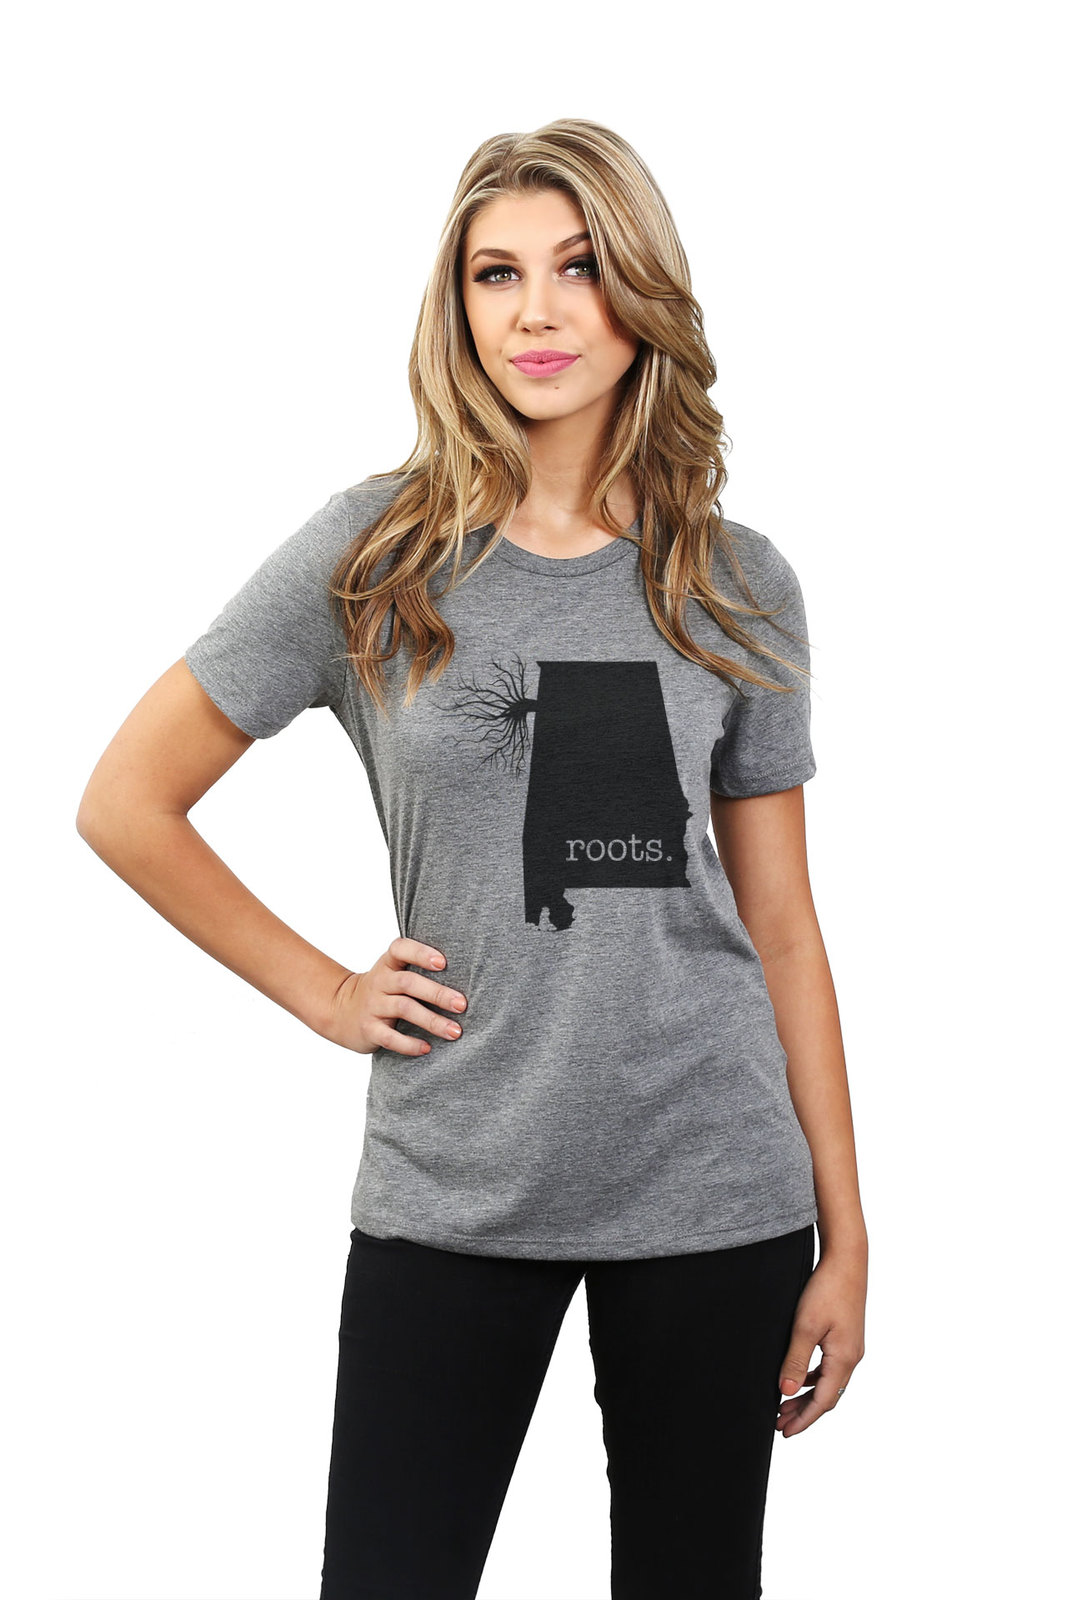 Thread Tank Home Roots State Alabama Women Relaxed T-Shirt Tee Heather Grey